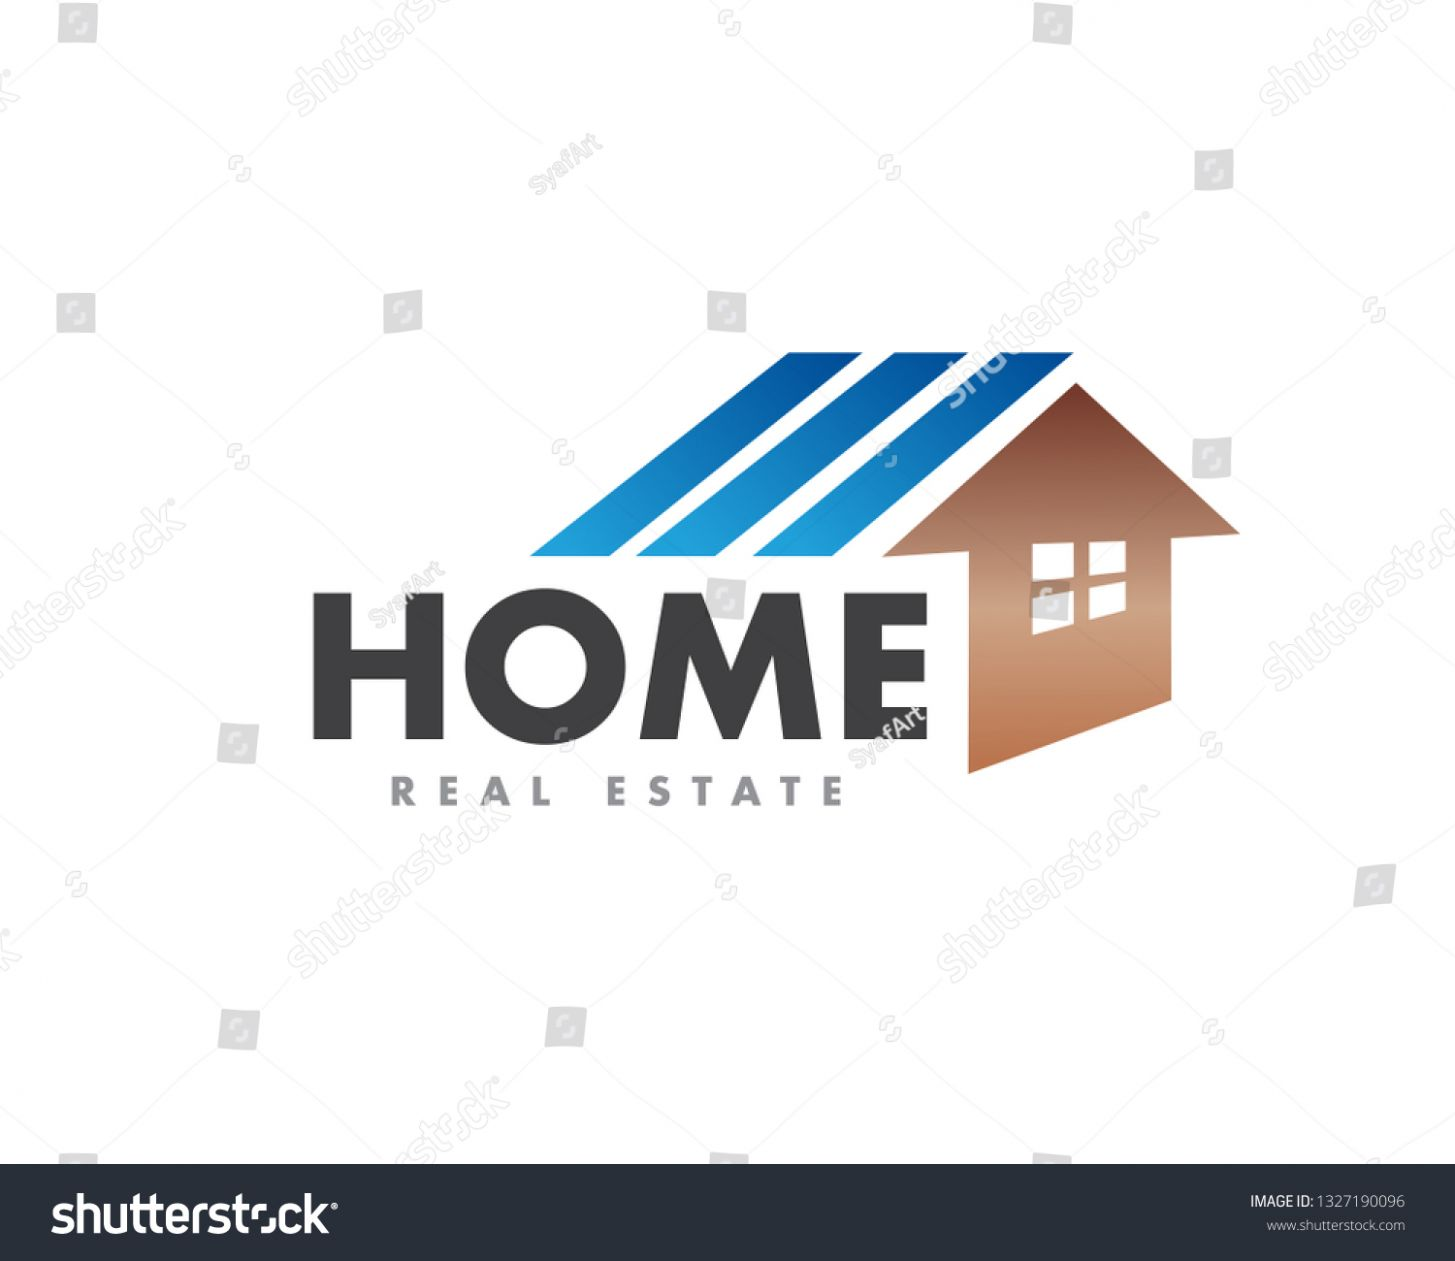 Abstract House Logo Design Inspiration Stock Vector (Royalty Free ...